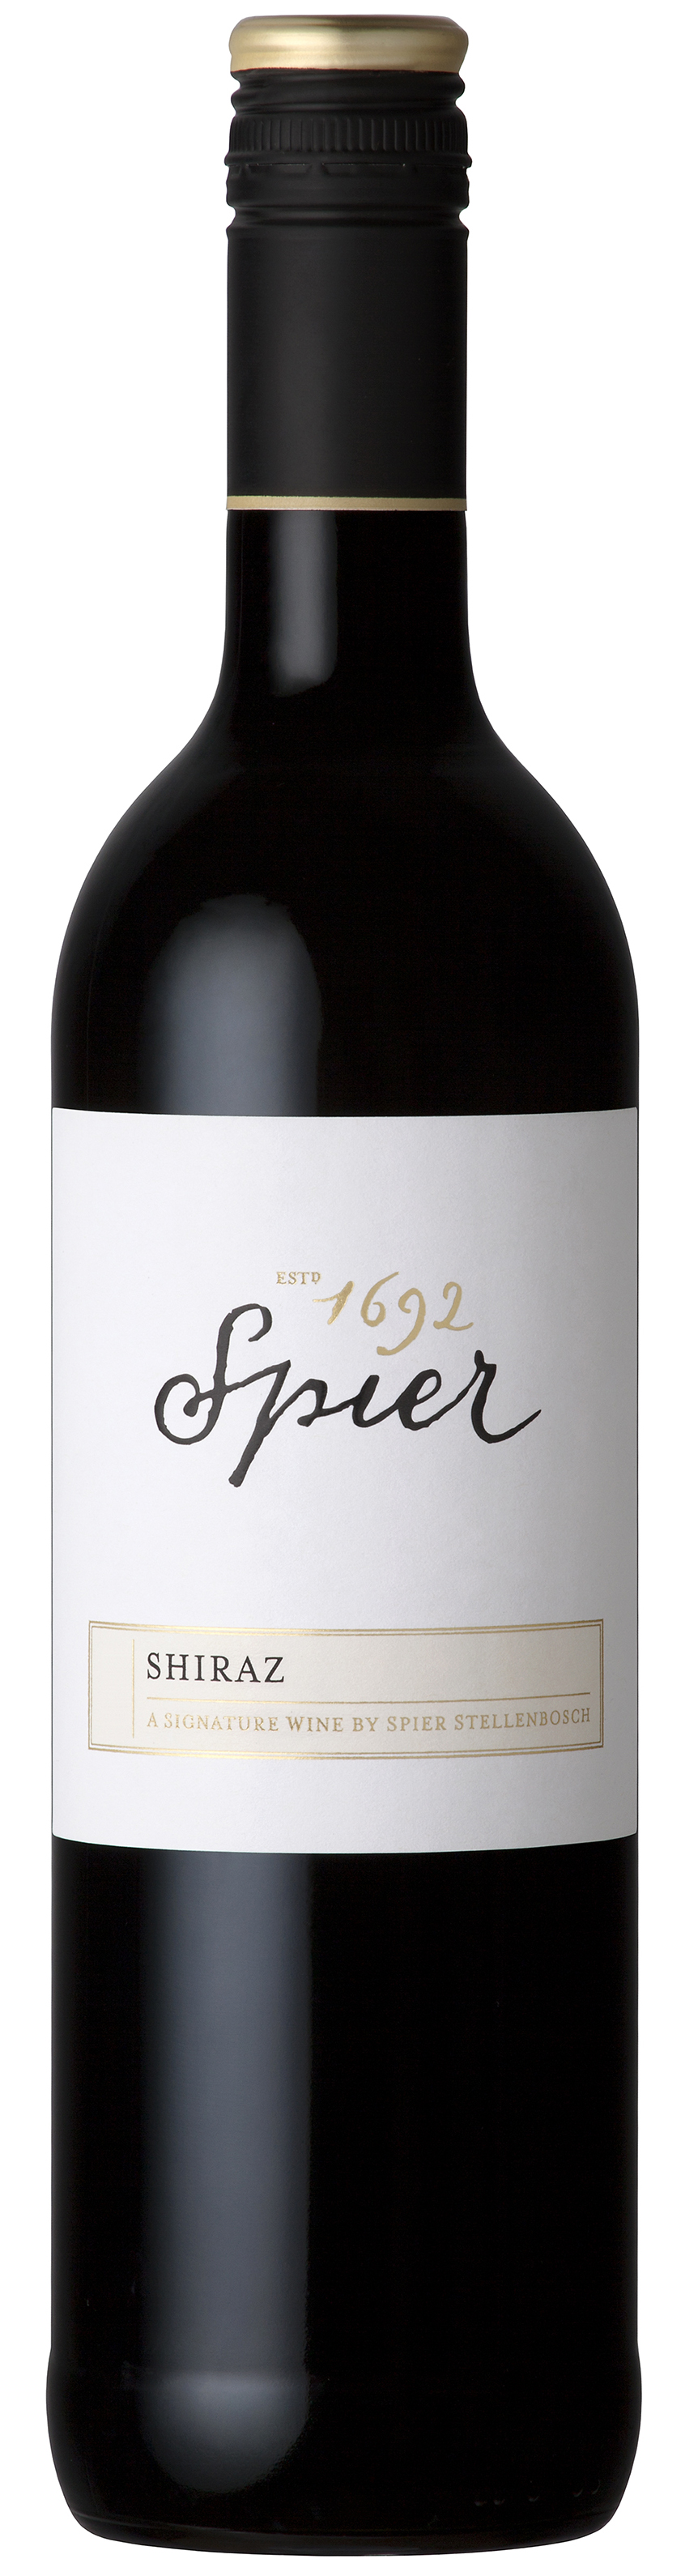 Spier Signature Shiraz 2014